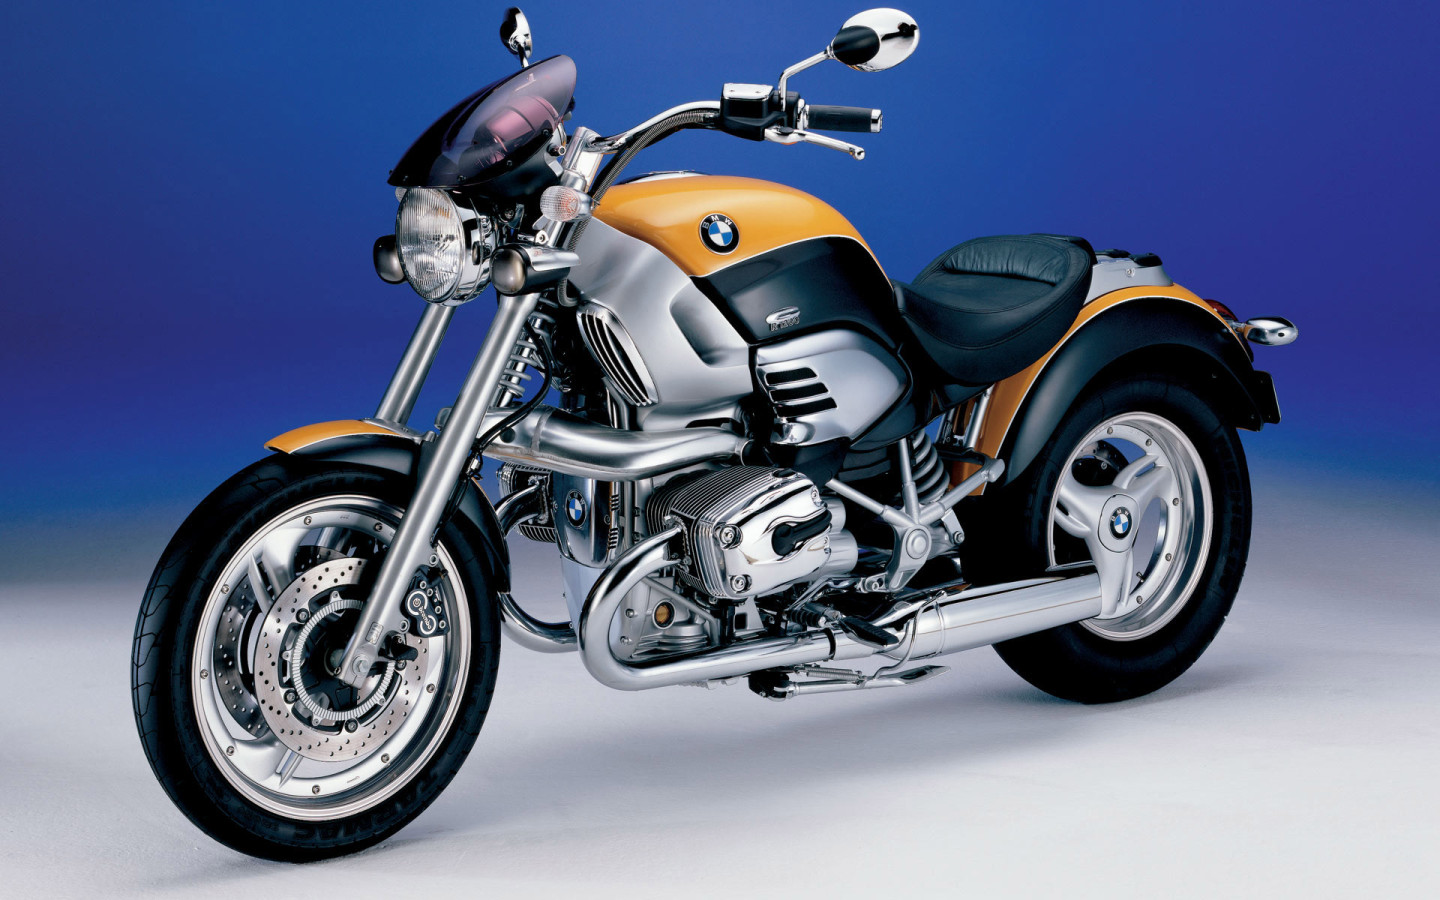 Bmw Motorcycles Latest Images View